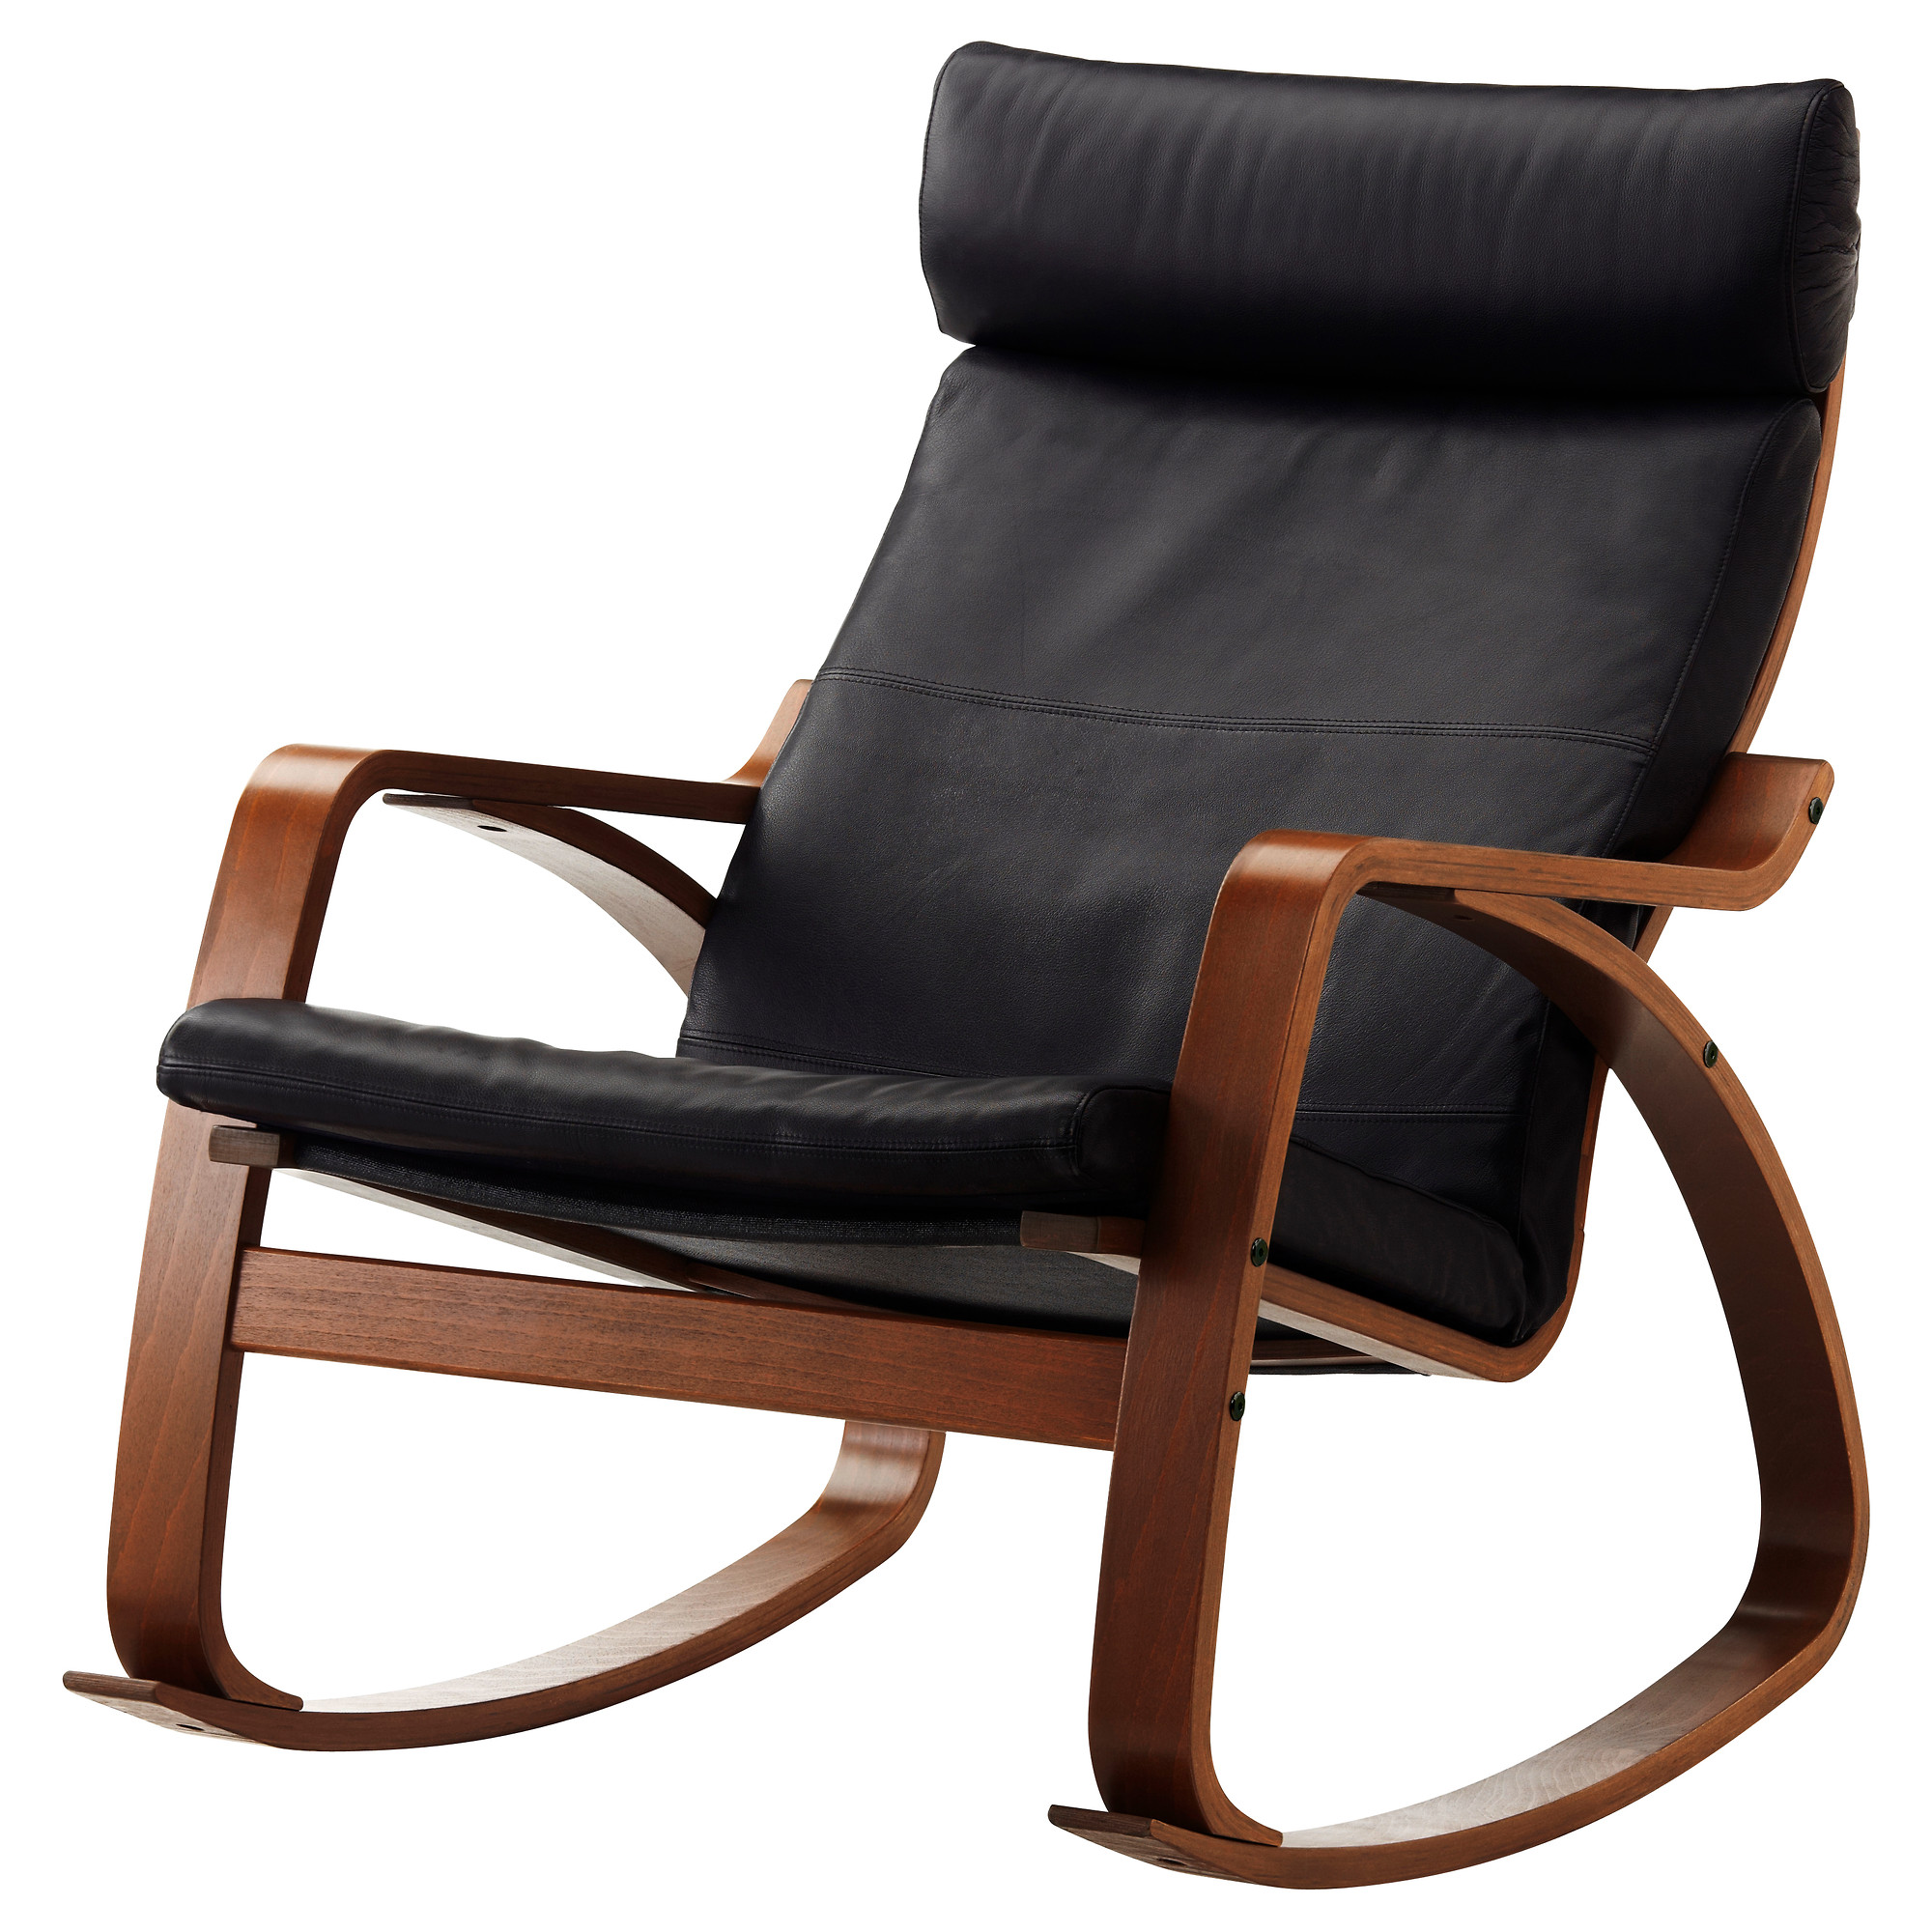 Poang chair living room - Po Ng Rocking Chair Medium Brown Glose Robust Black Width 26 3 4